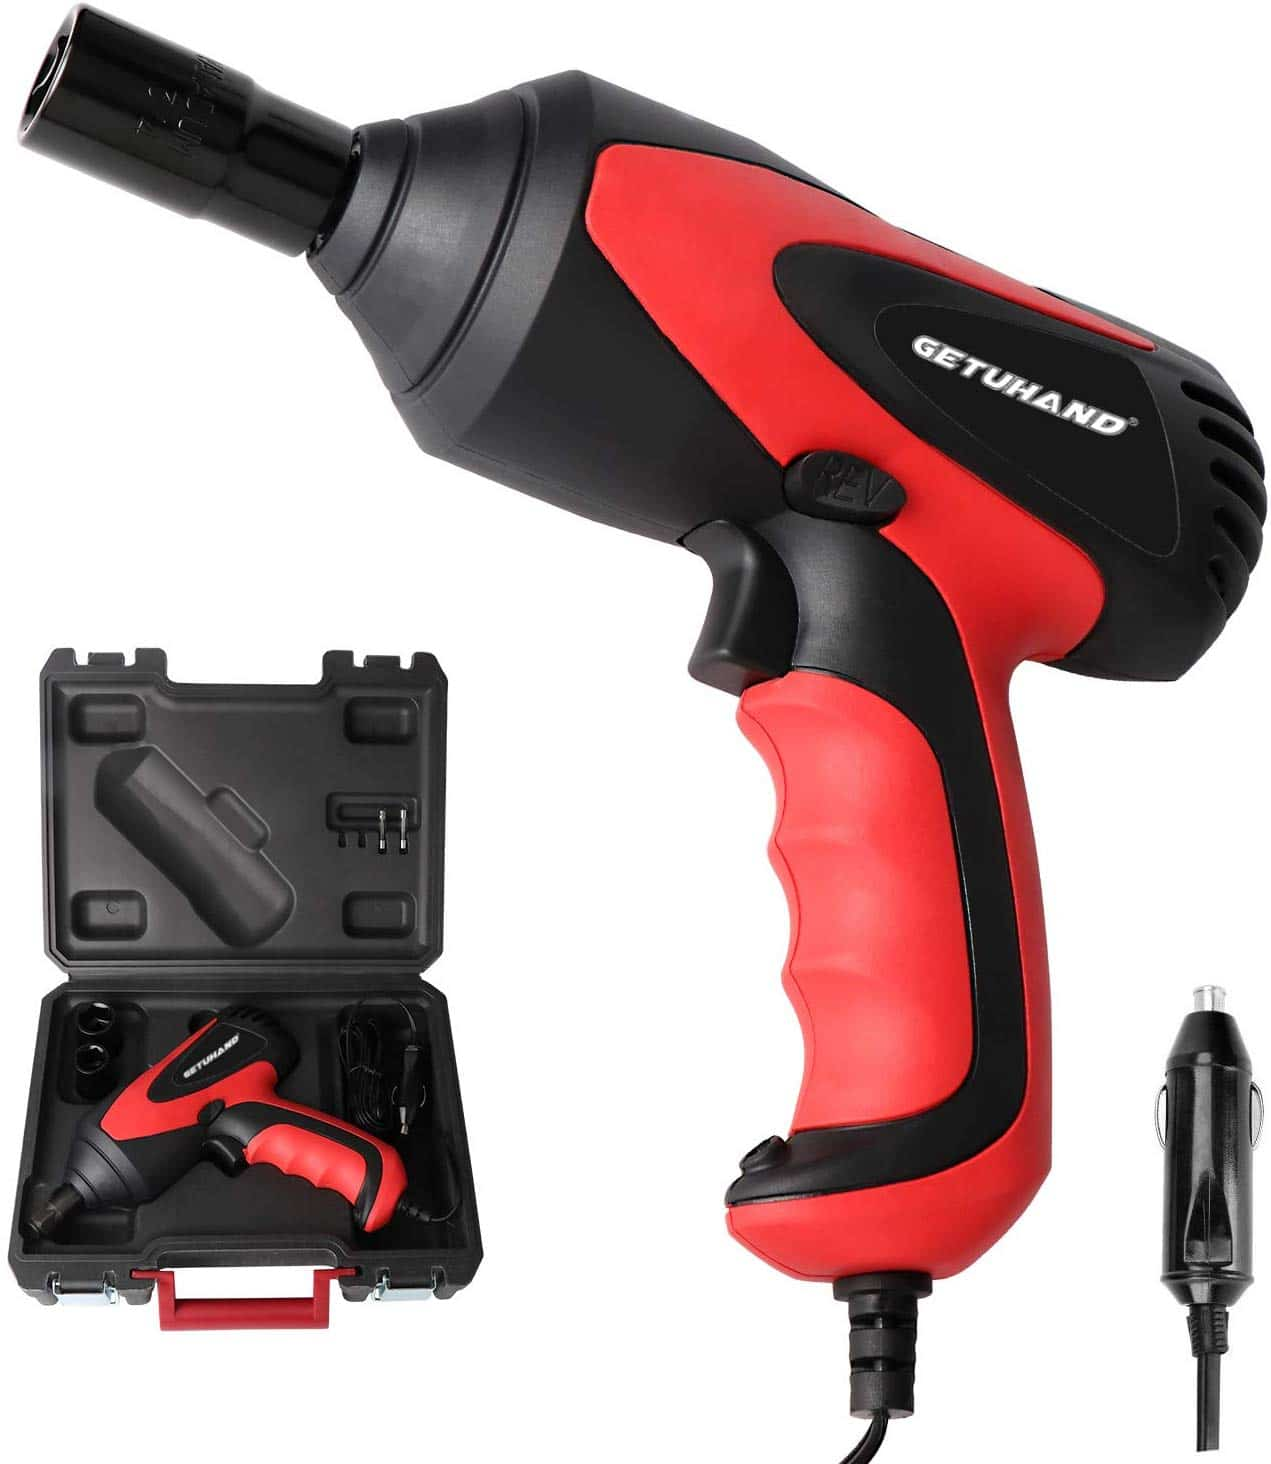 GETUHAND Car Impact Wrench 1/2 Inch